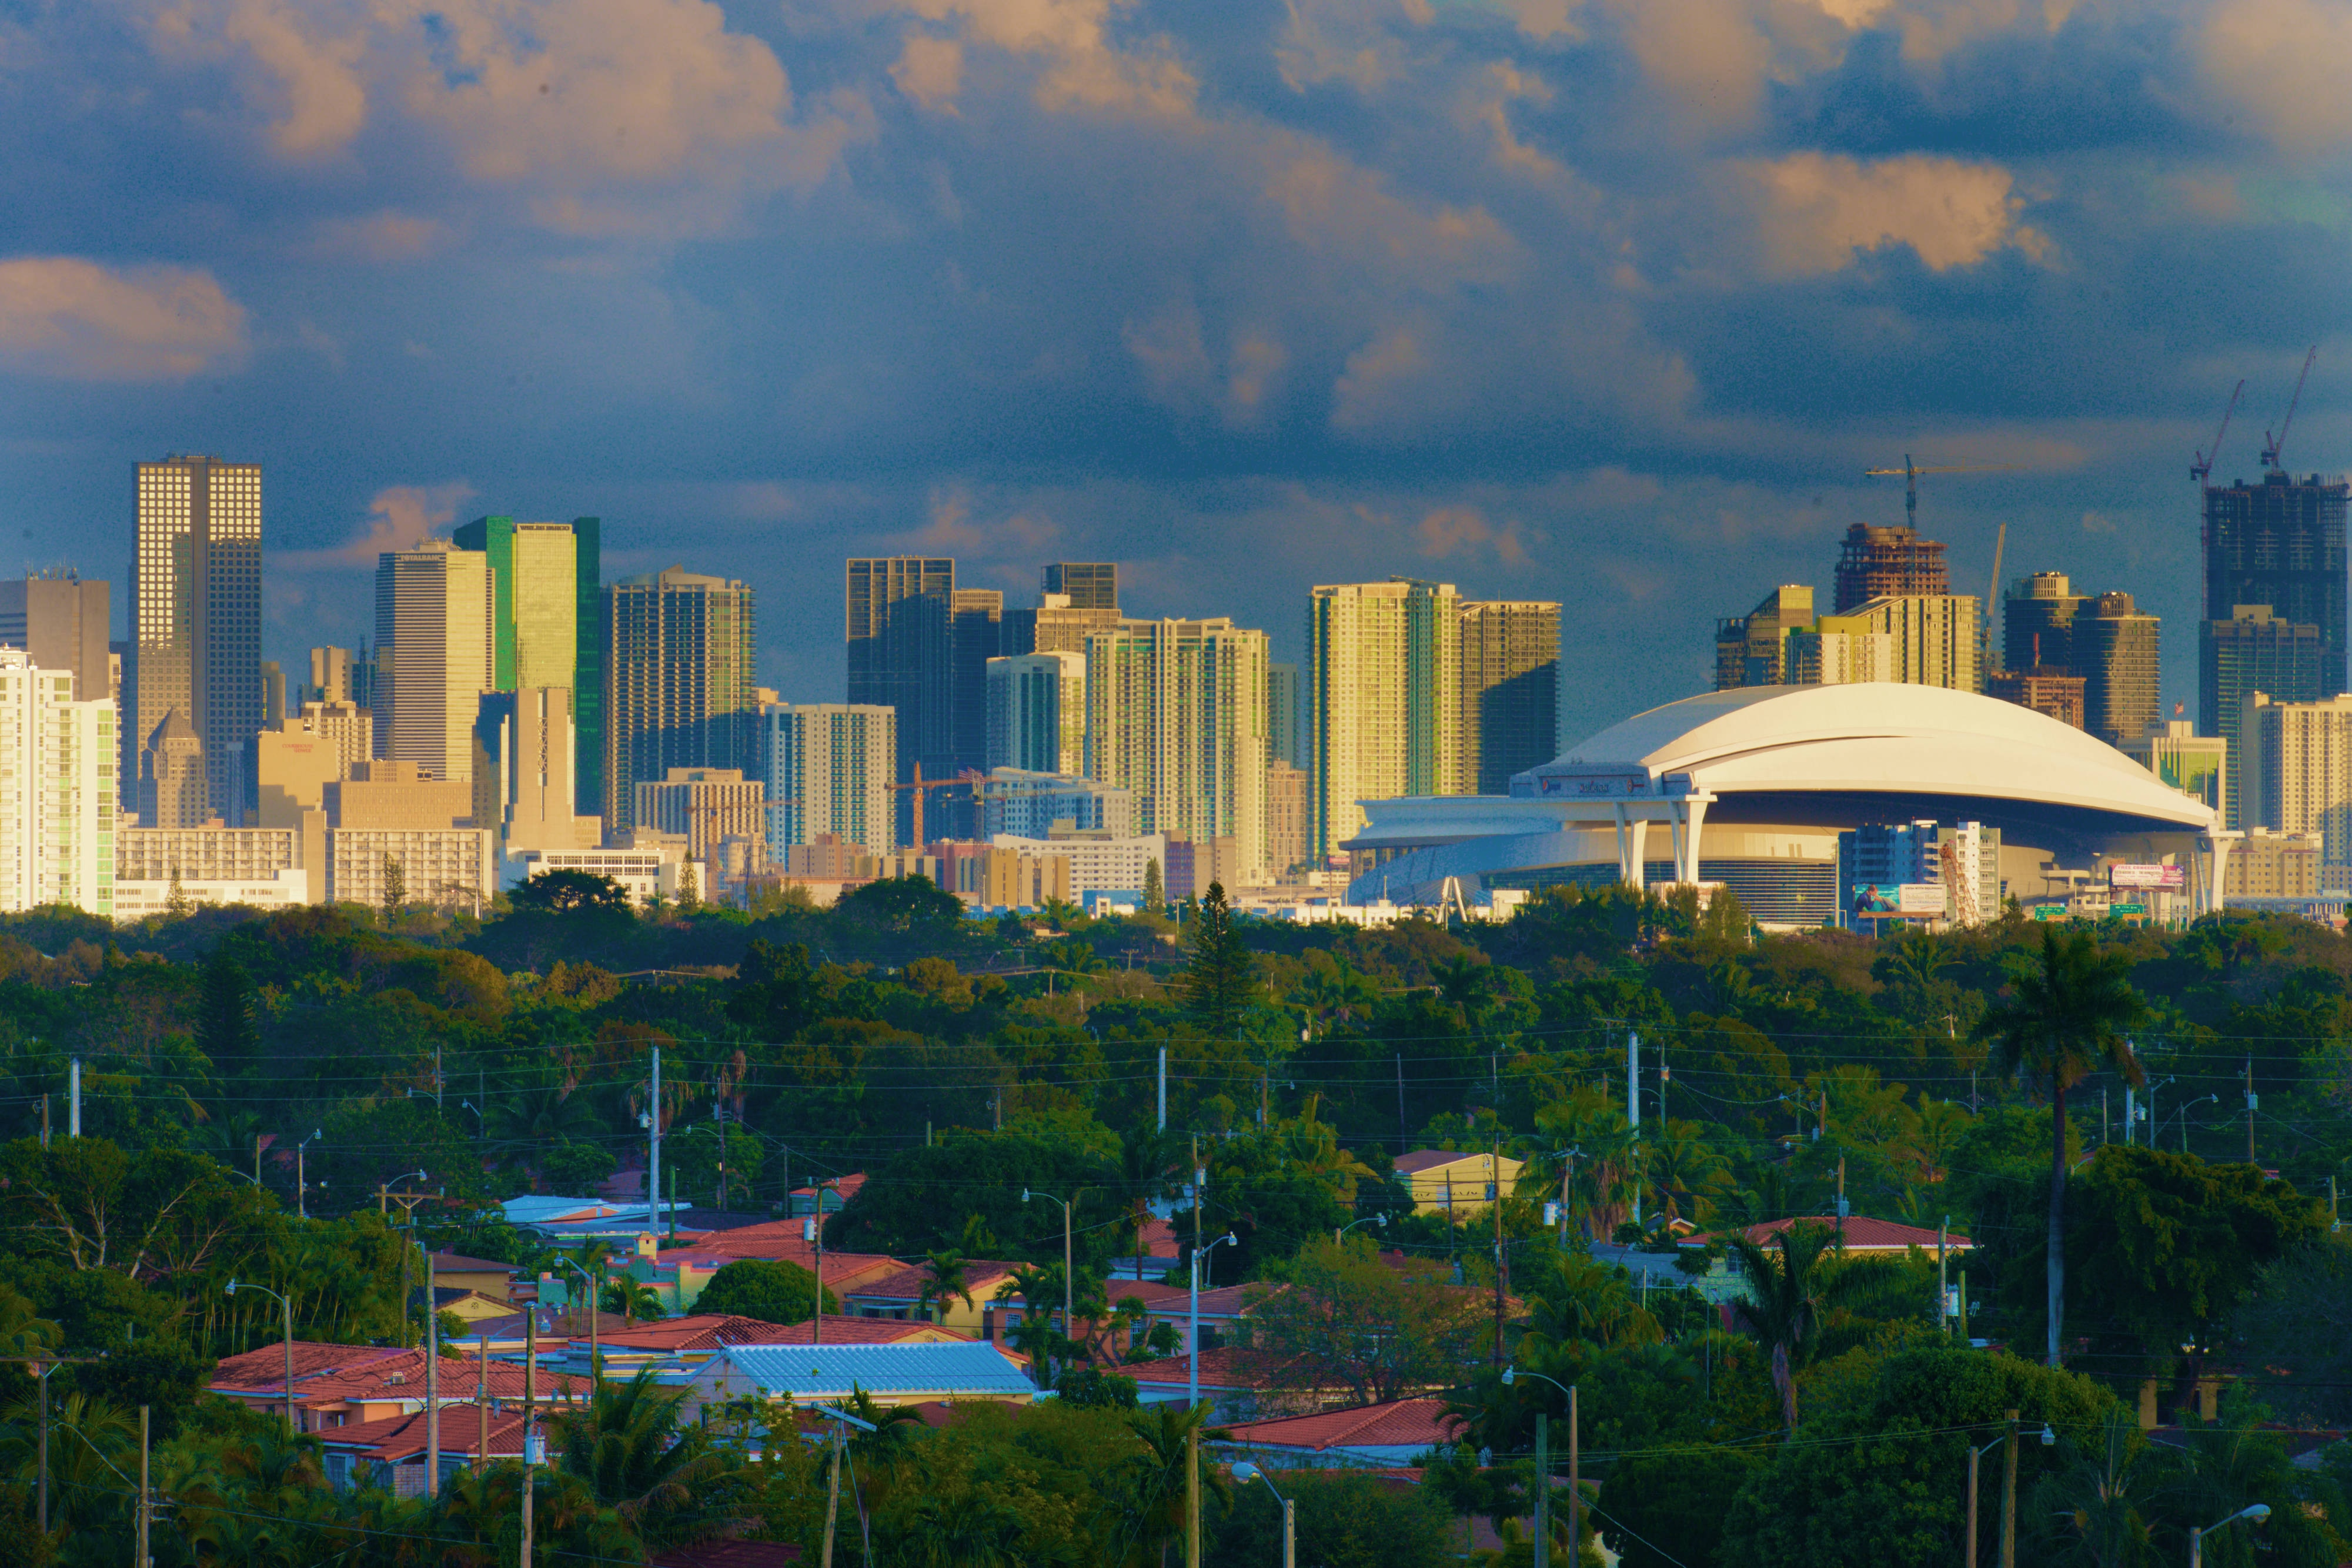 DowntownSkyline and Marlins Park